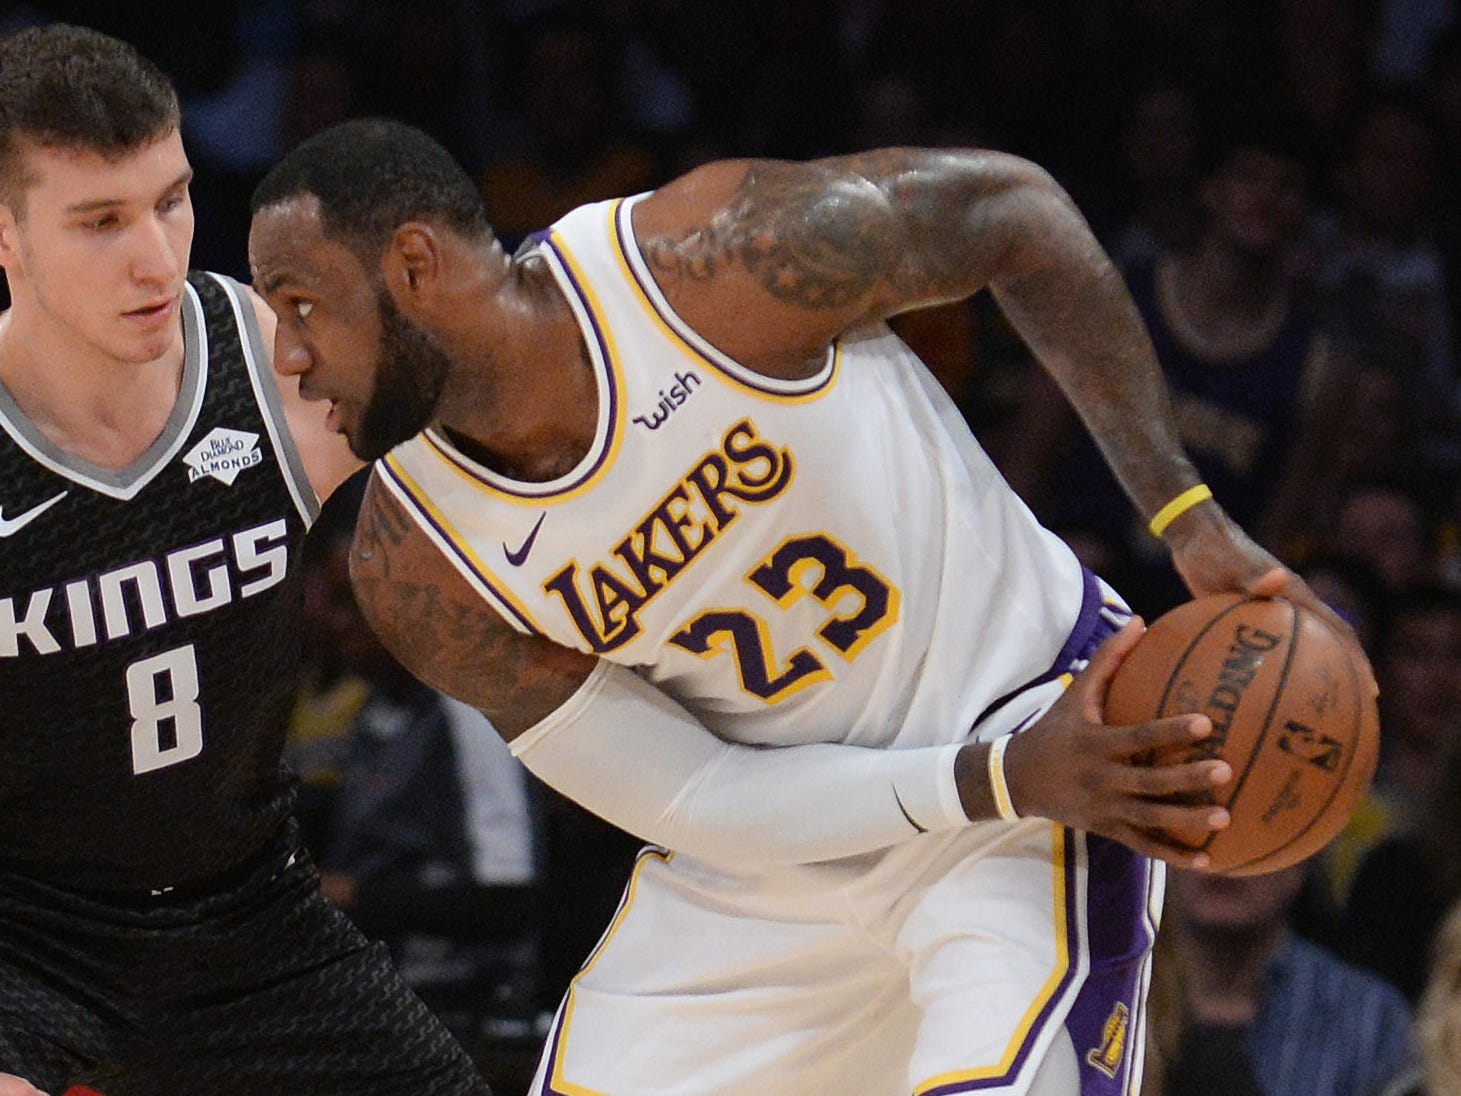 108. LeBron James, Lakers (March 24): 29 points, 11 rebounds, 11 assists in 111-106 win over Kings (eighth of season).